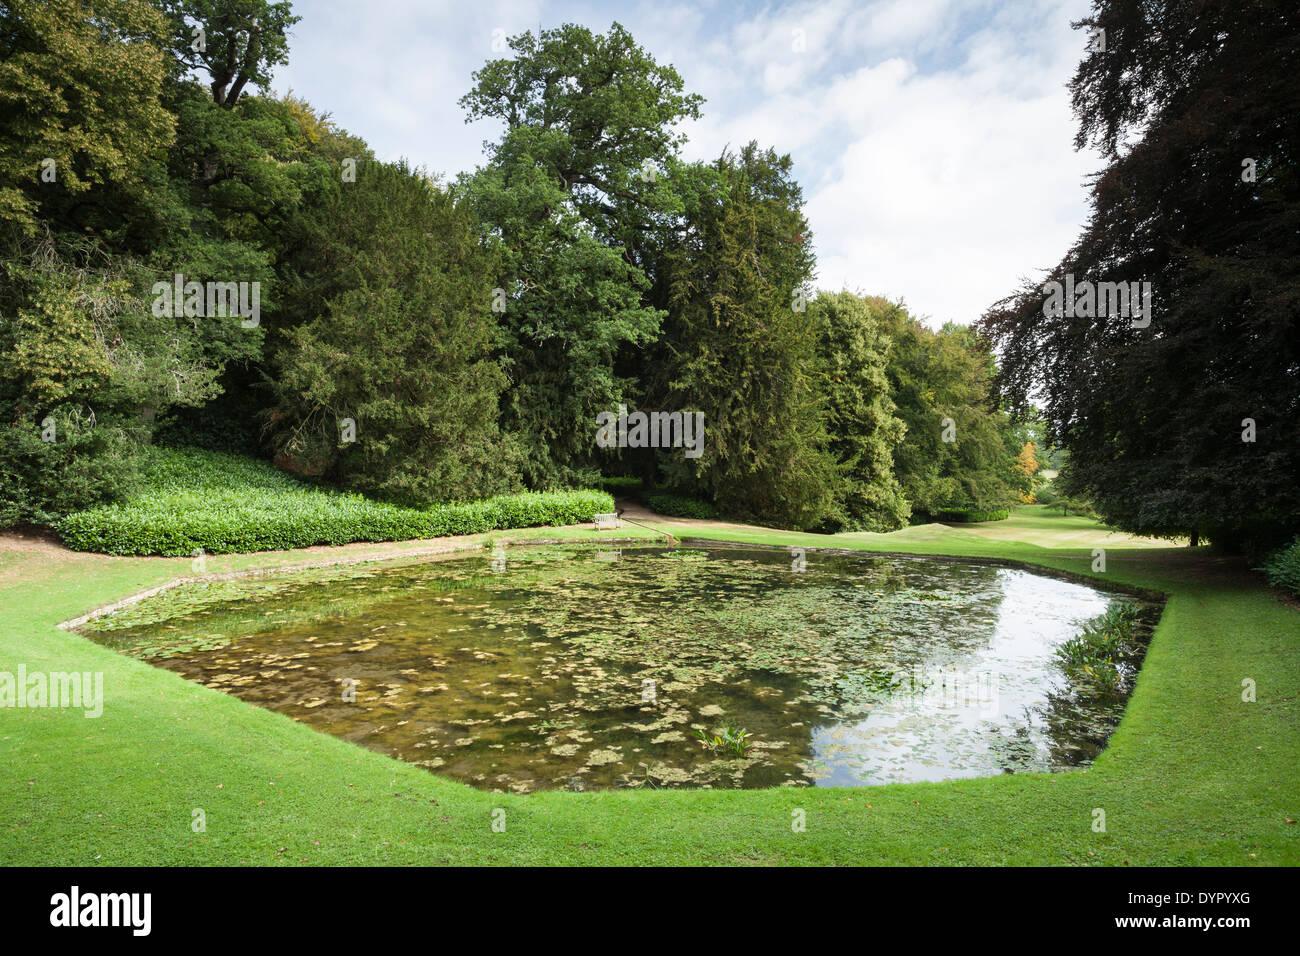 A Slightly Elevated View Of The Large Ornamental Octagonal Pond In Venusu0027  Vale, Rousham House Gardens, Oxfordshire, England